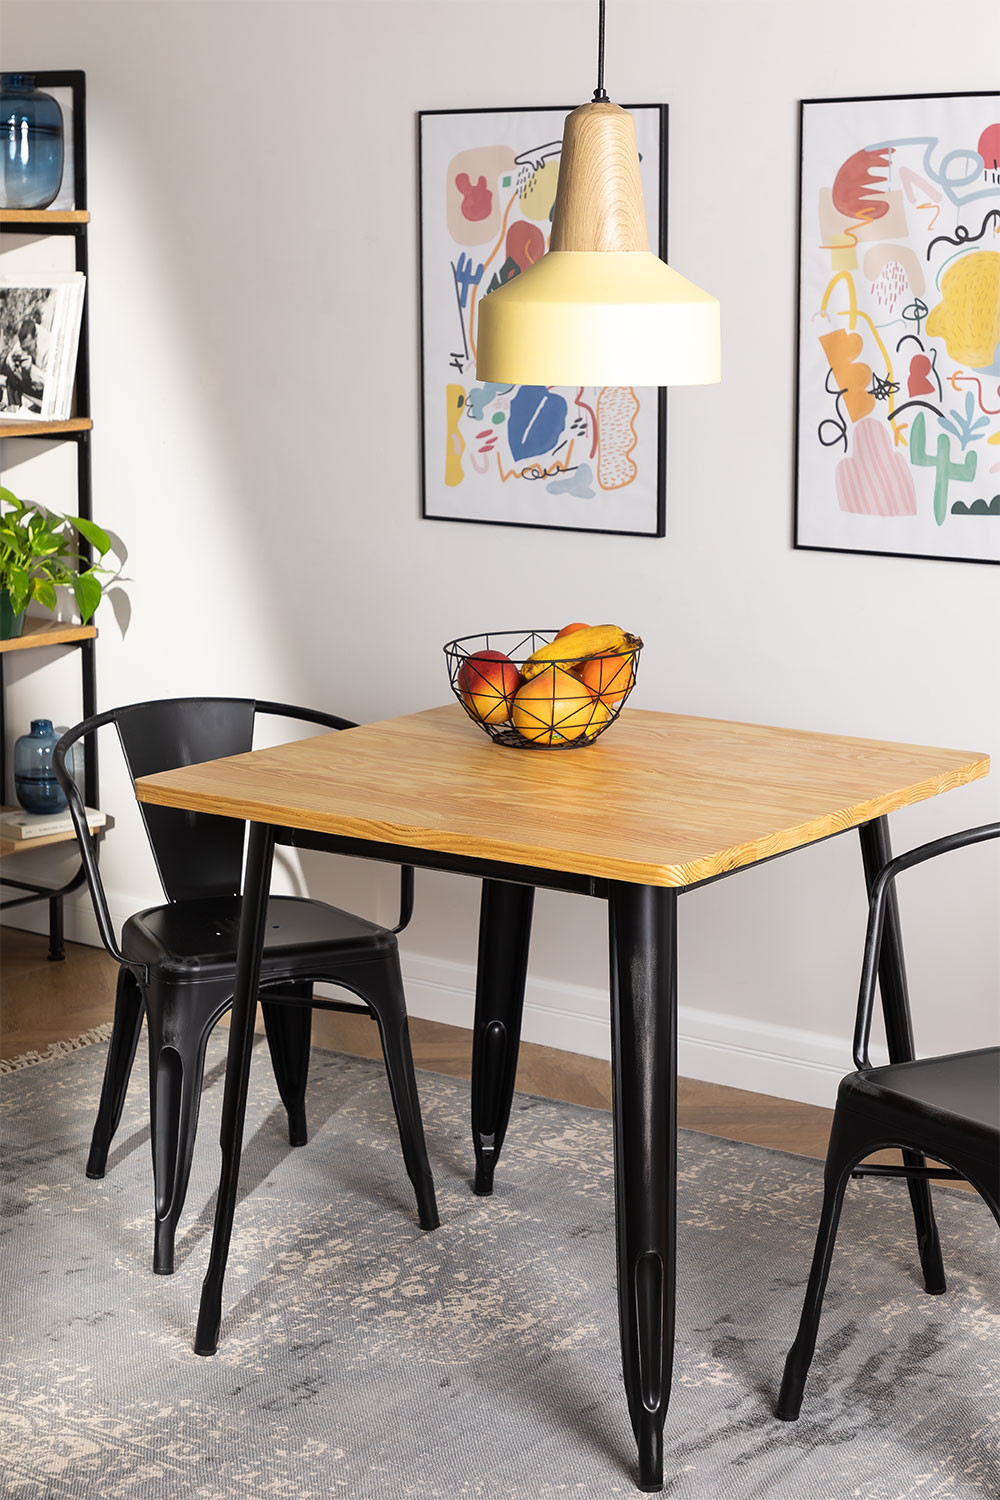 Vintage Wooden LIX Table (80x80), gallery image 1